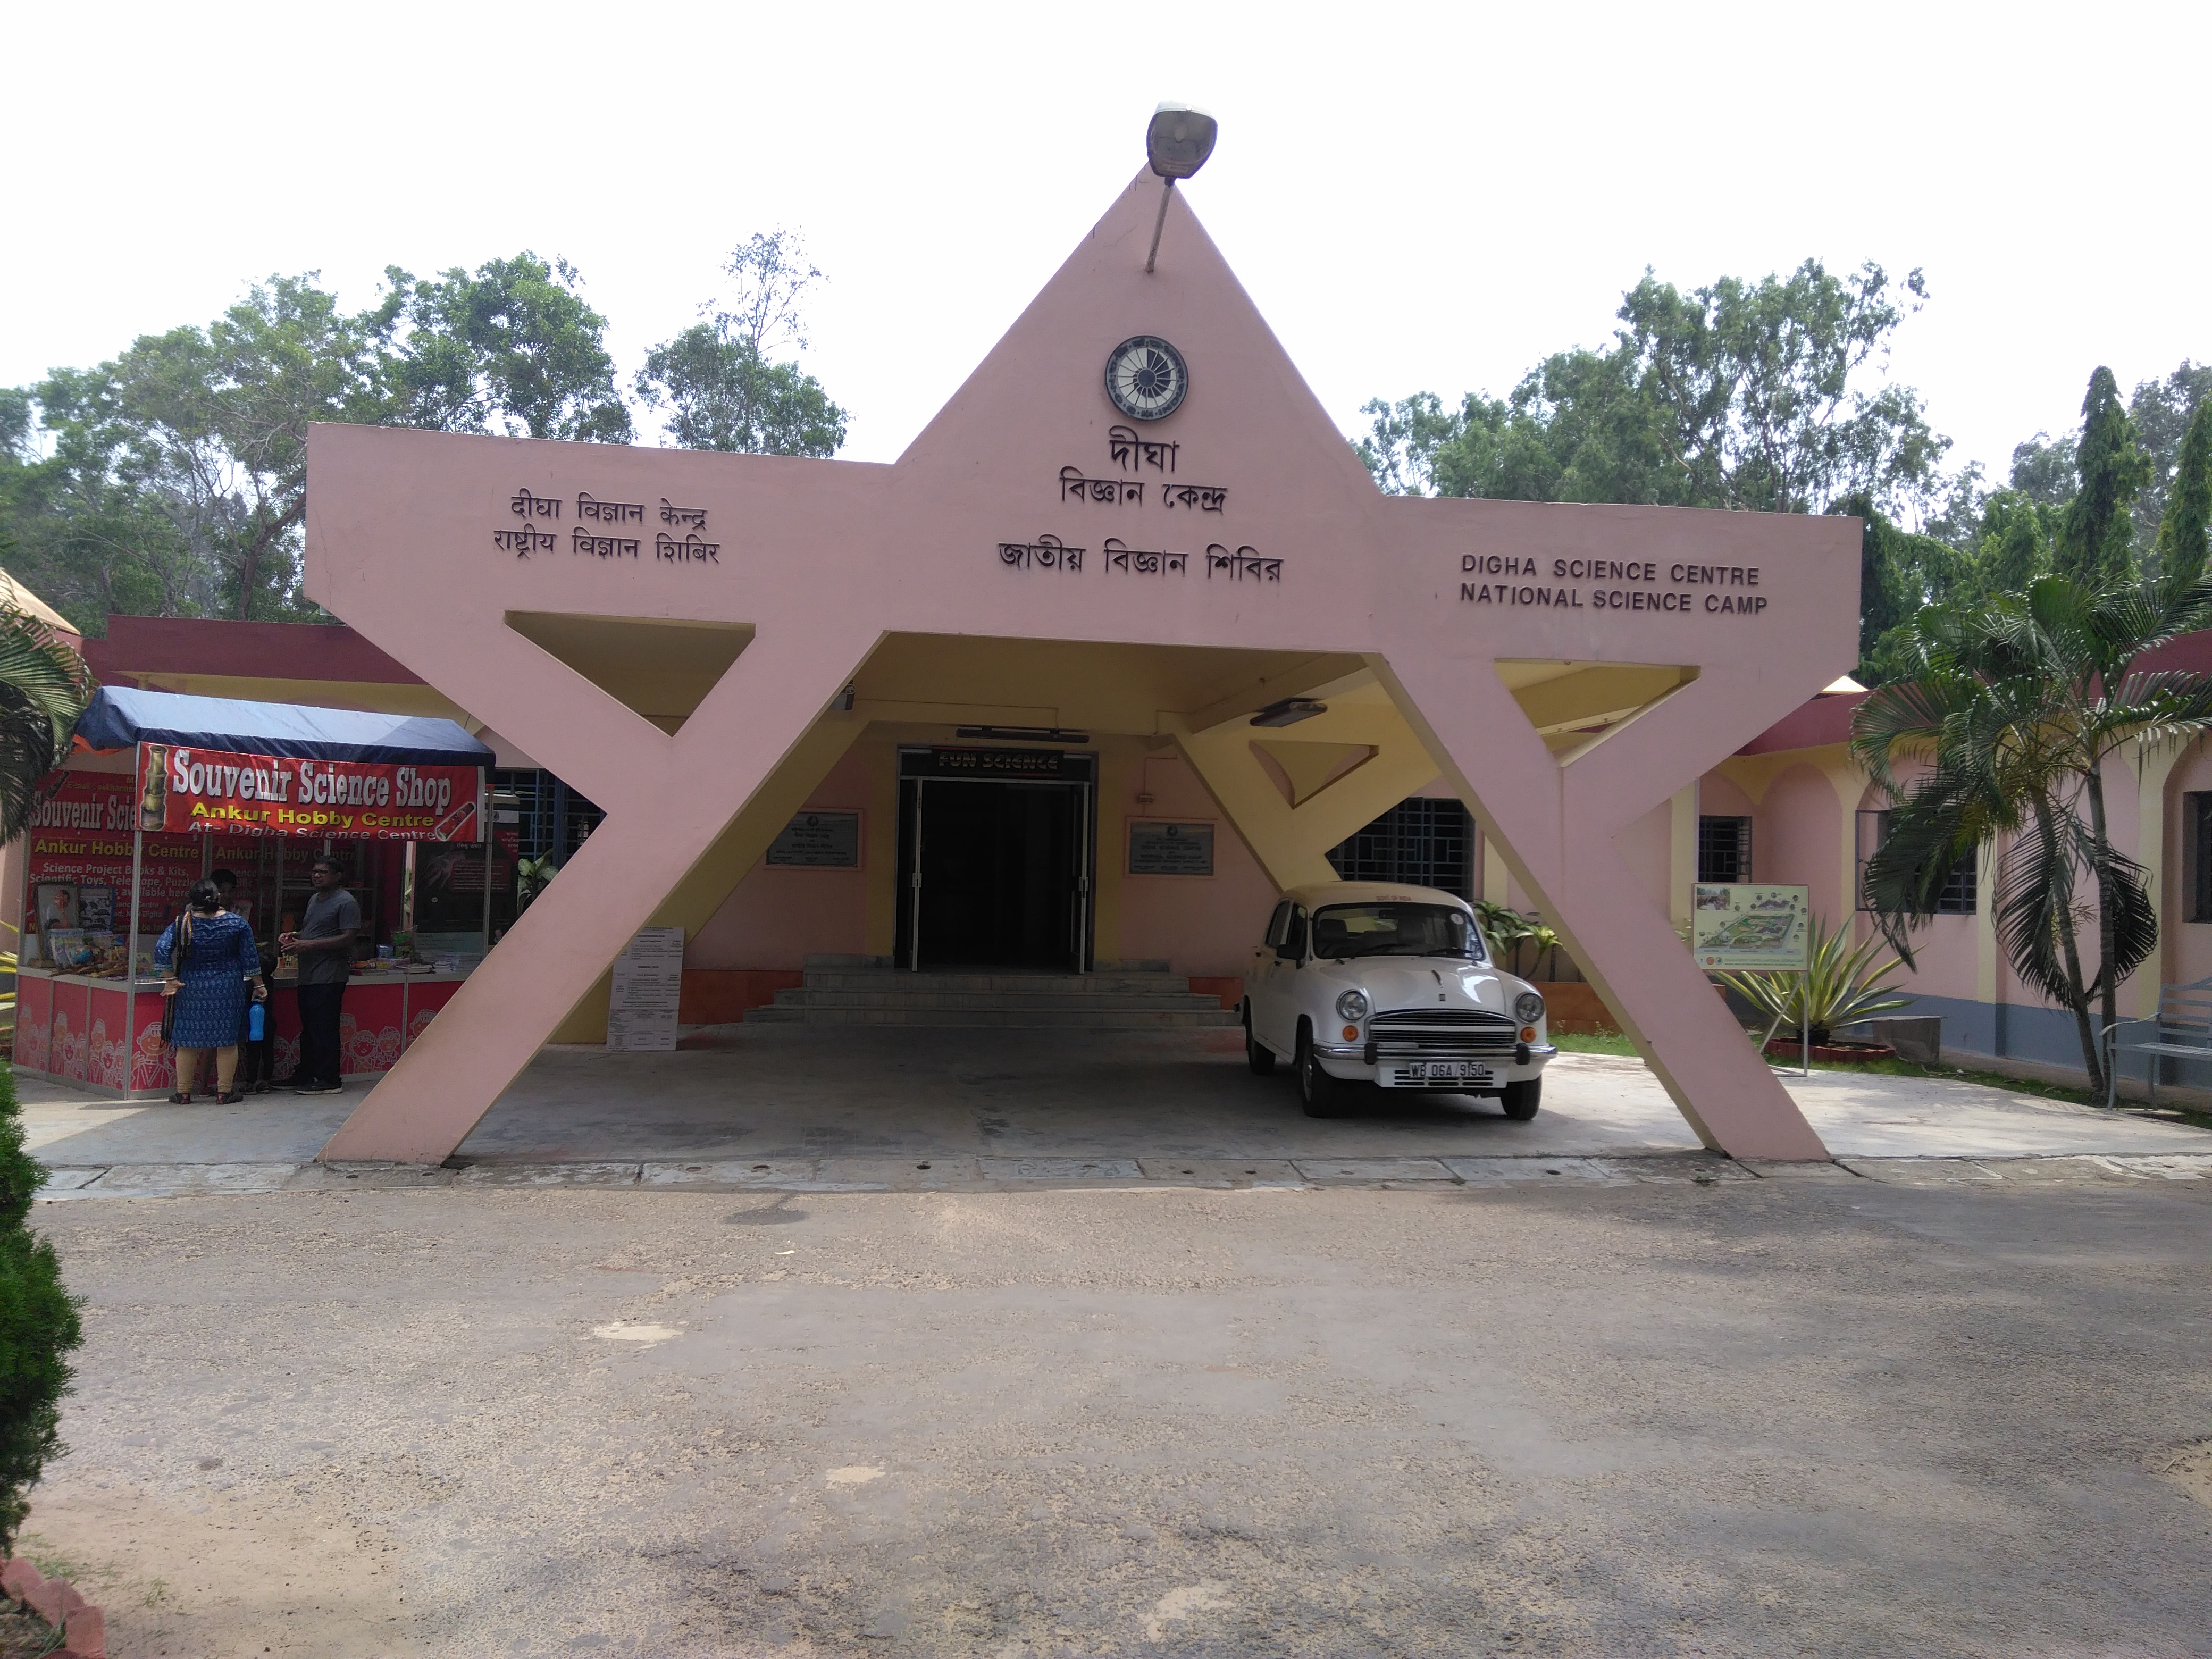 File:Digha Science Centre and National Science Camp.jpg ...